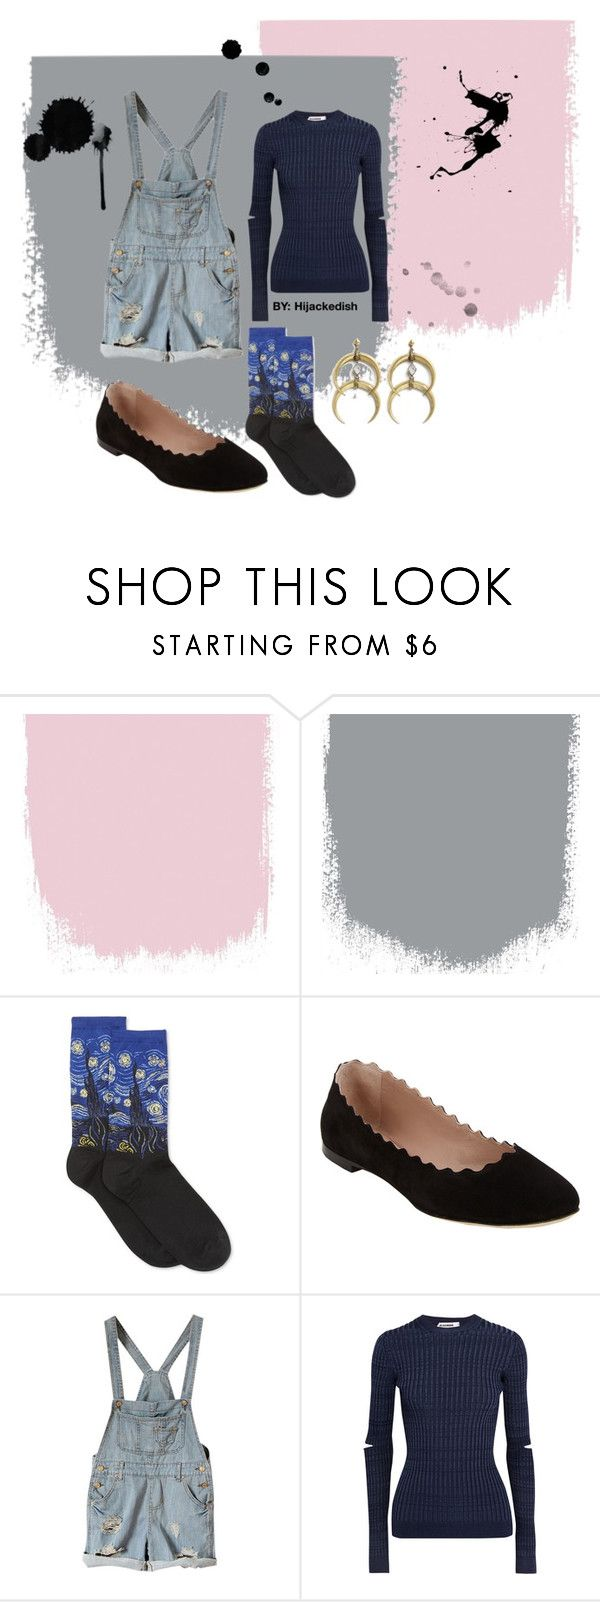 """Starry night 0.2"" by hijackedish on Polyvore featuring HOT SOX, Chloé, Jil Sander and A Peace Treaty"